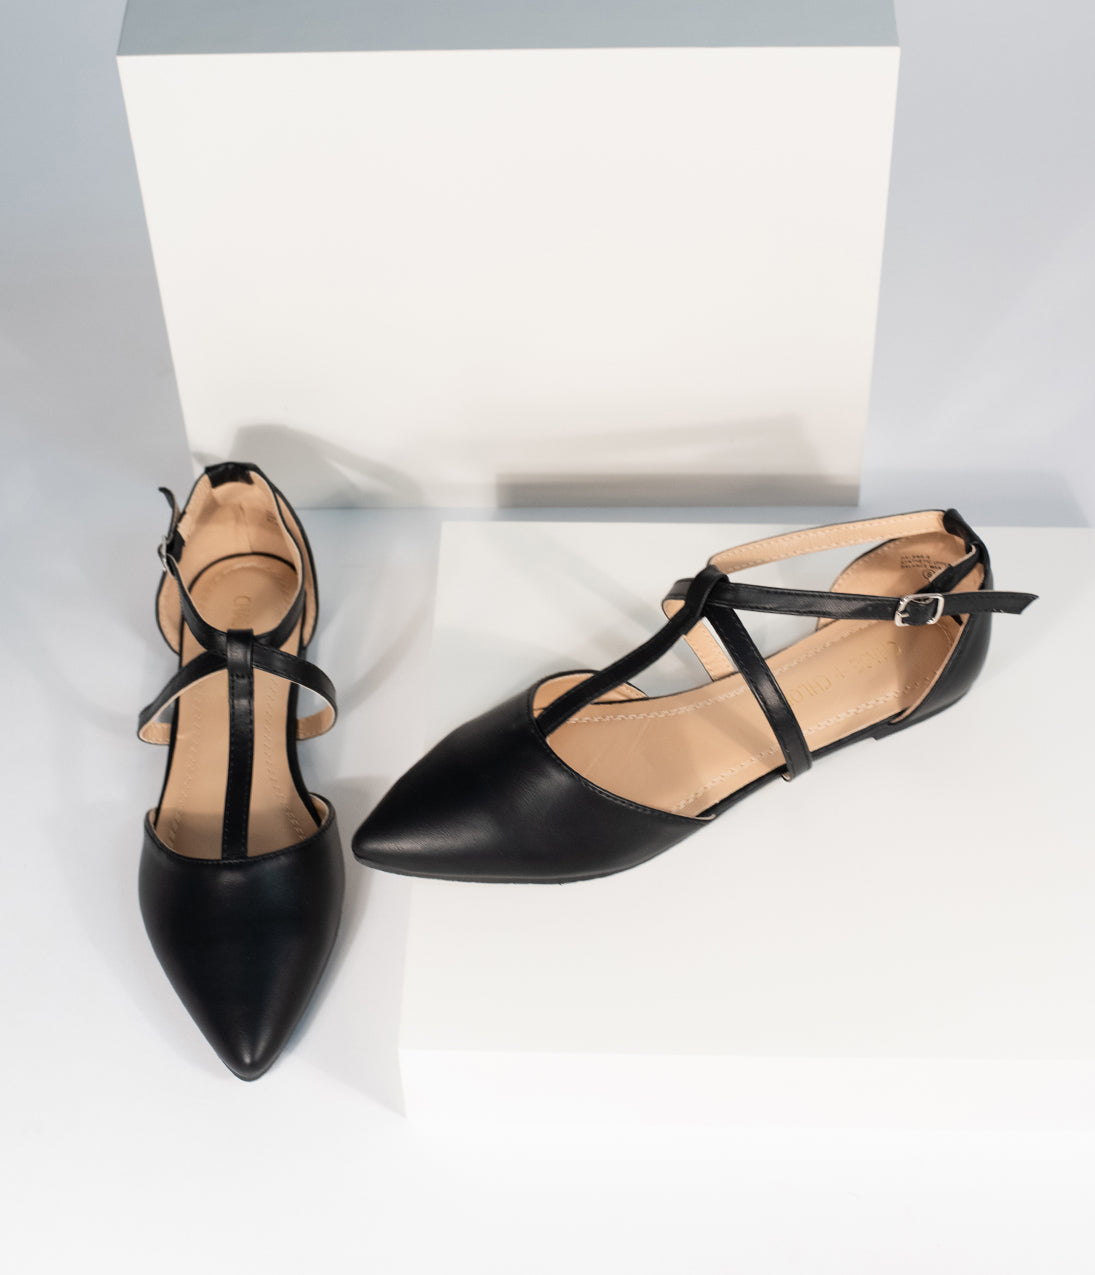 Pin Up Shoes- Heels, Pumps & Flats Black Leatherette Pointed Toe Dalena T-Strap Flat Sandals $32.00 AT vintagedancer.com